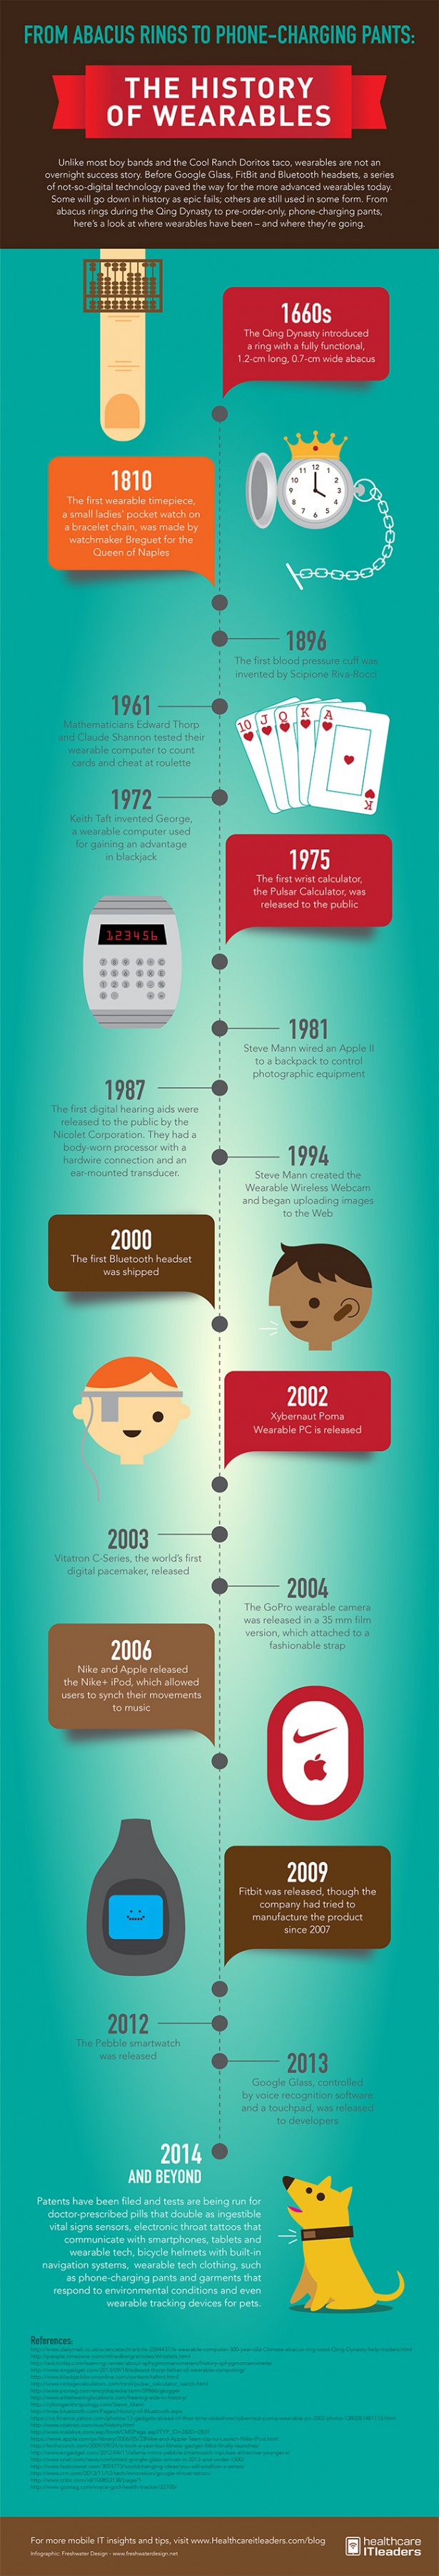 History-of-Wearables-Healthcare-IT-Leaders